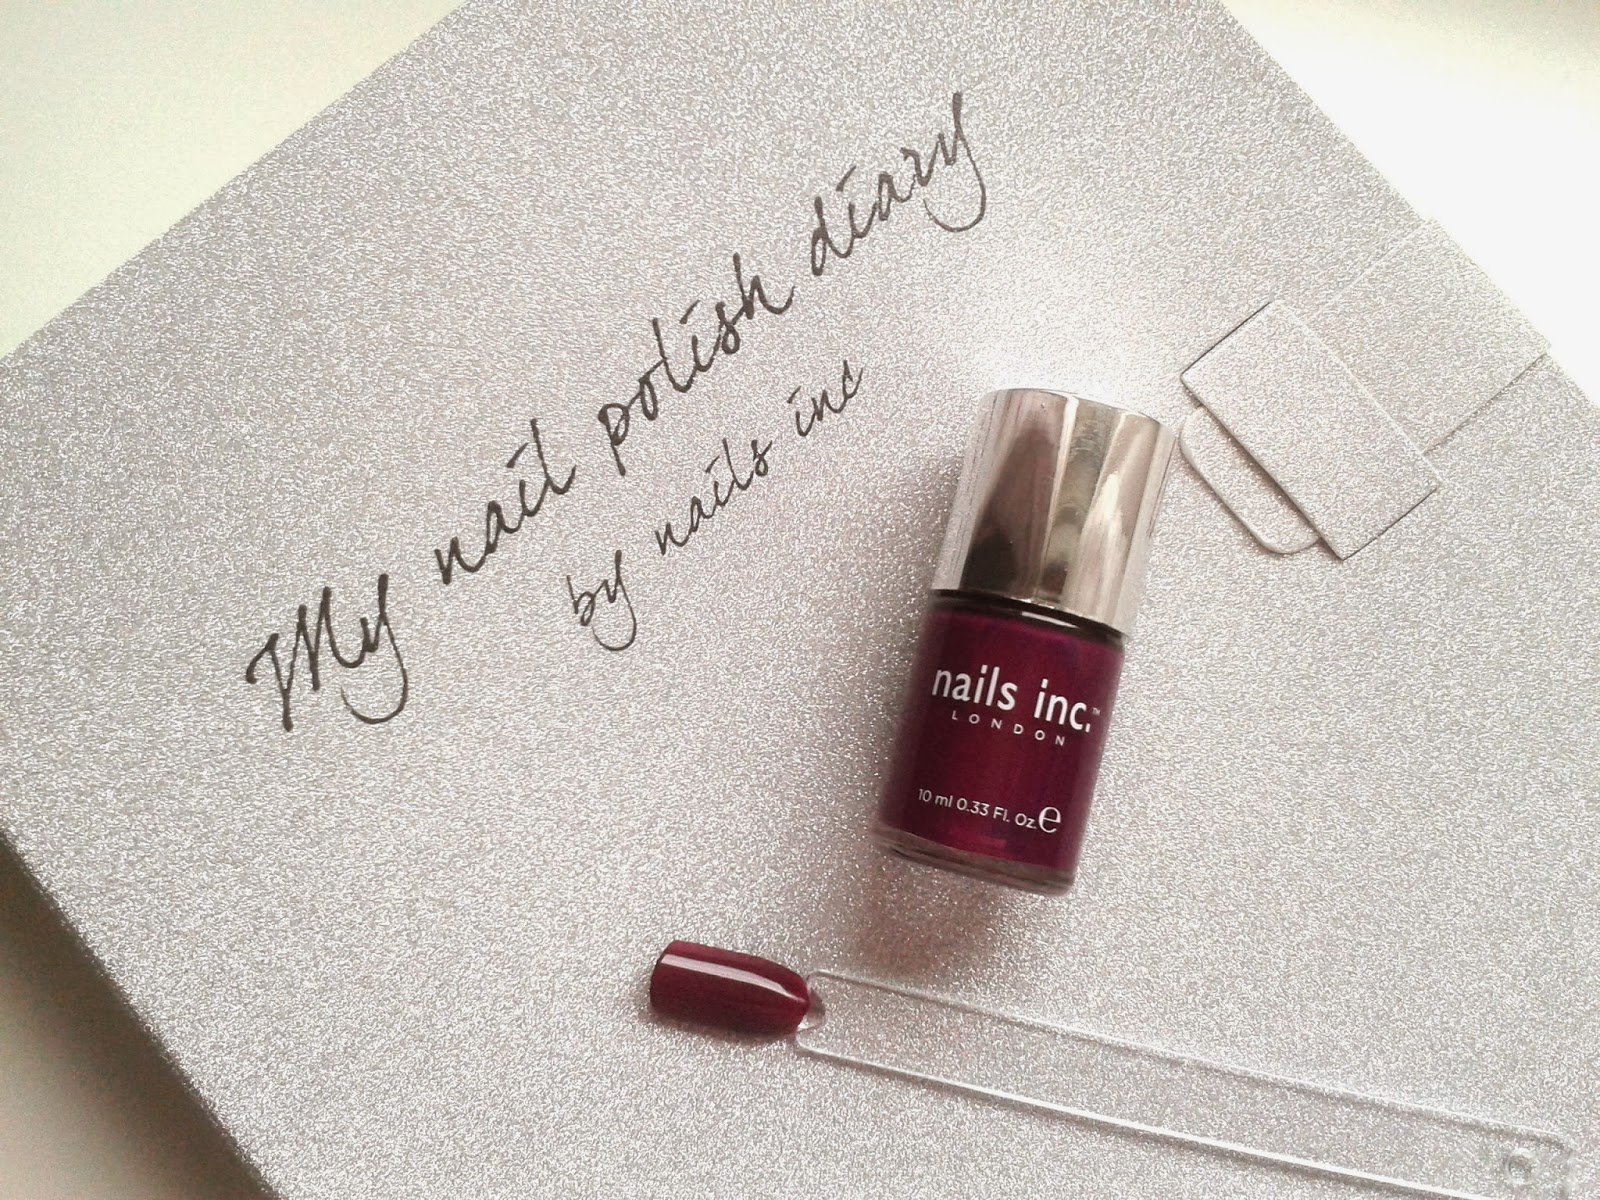 Nails Inc Nail Polish Diary St. Martin's Lane Beauty review swatch